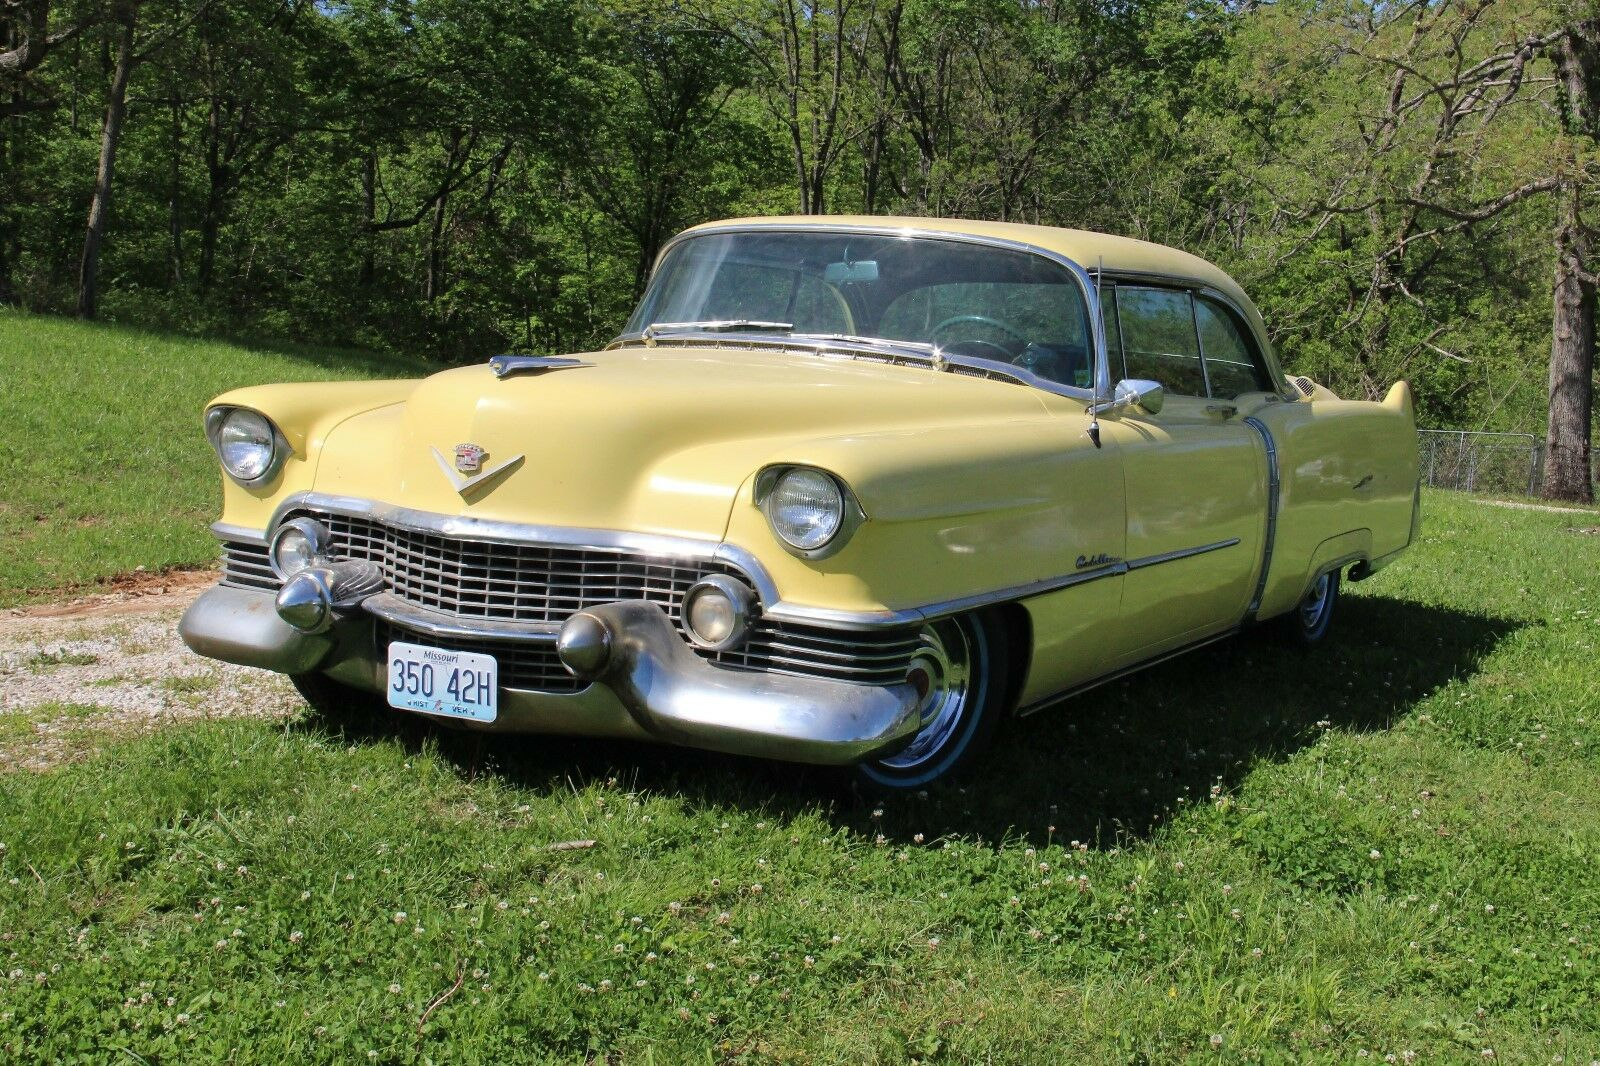 1954 Cadillac Coupe Deville - Used Cadillac Deville for ...